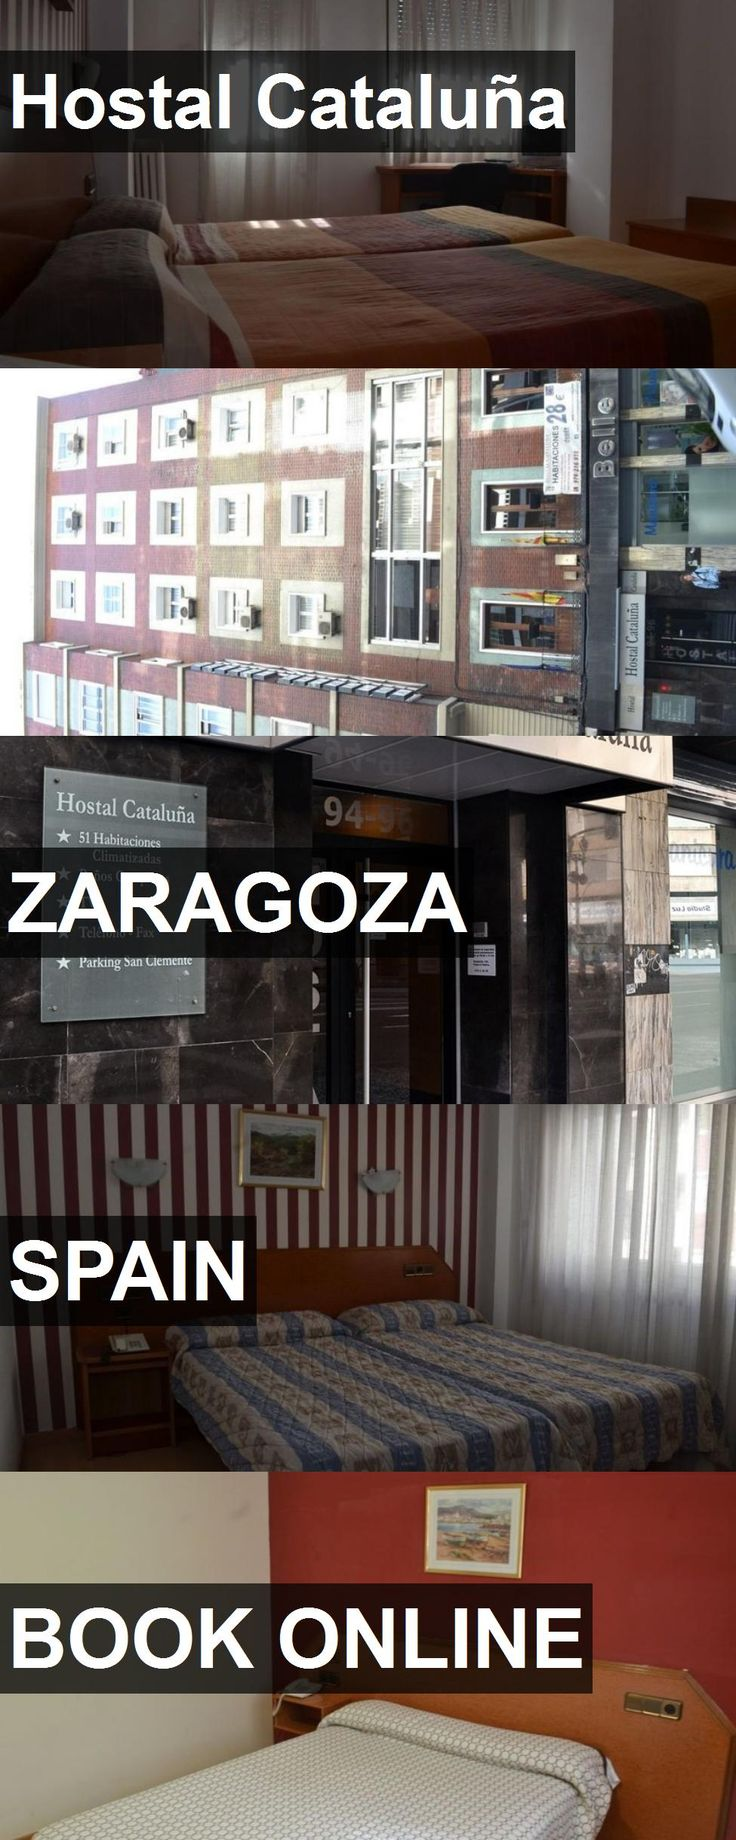 Hotel Hostal Cataluña in Zaragoza, Spain. For more information, photos, reviews and best prices please follow the link. #Spain #Zaragoza #travel #vacation #hotel